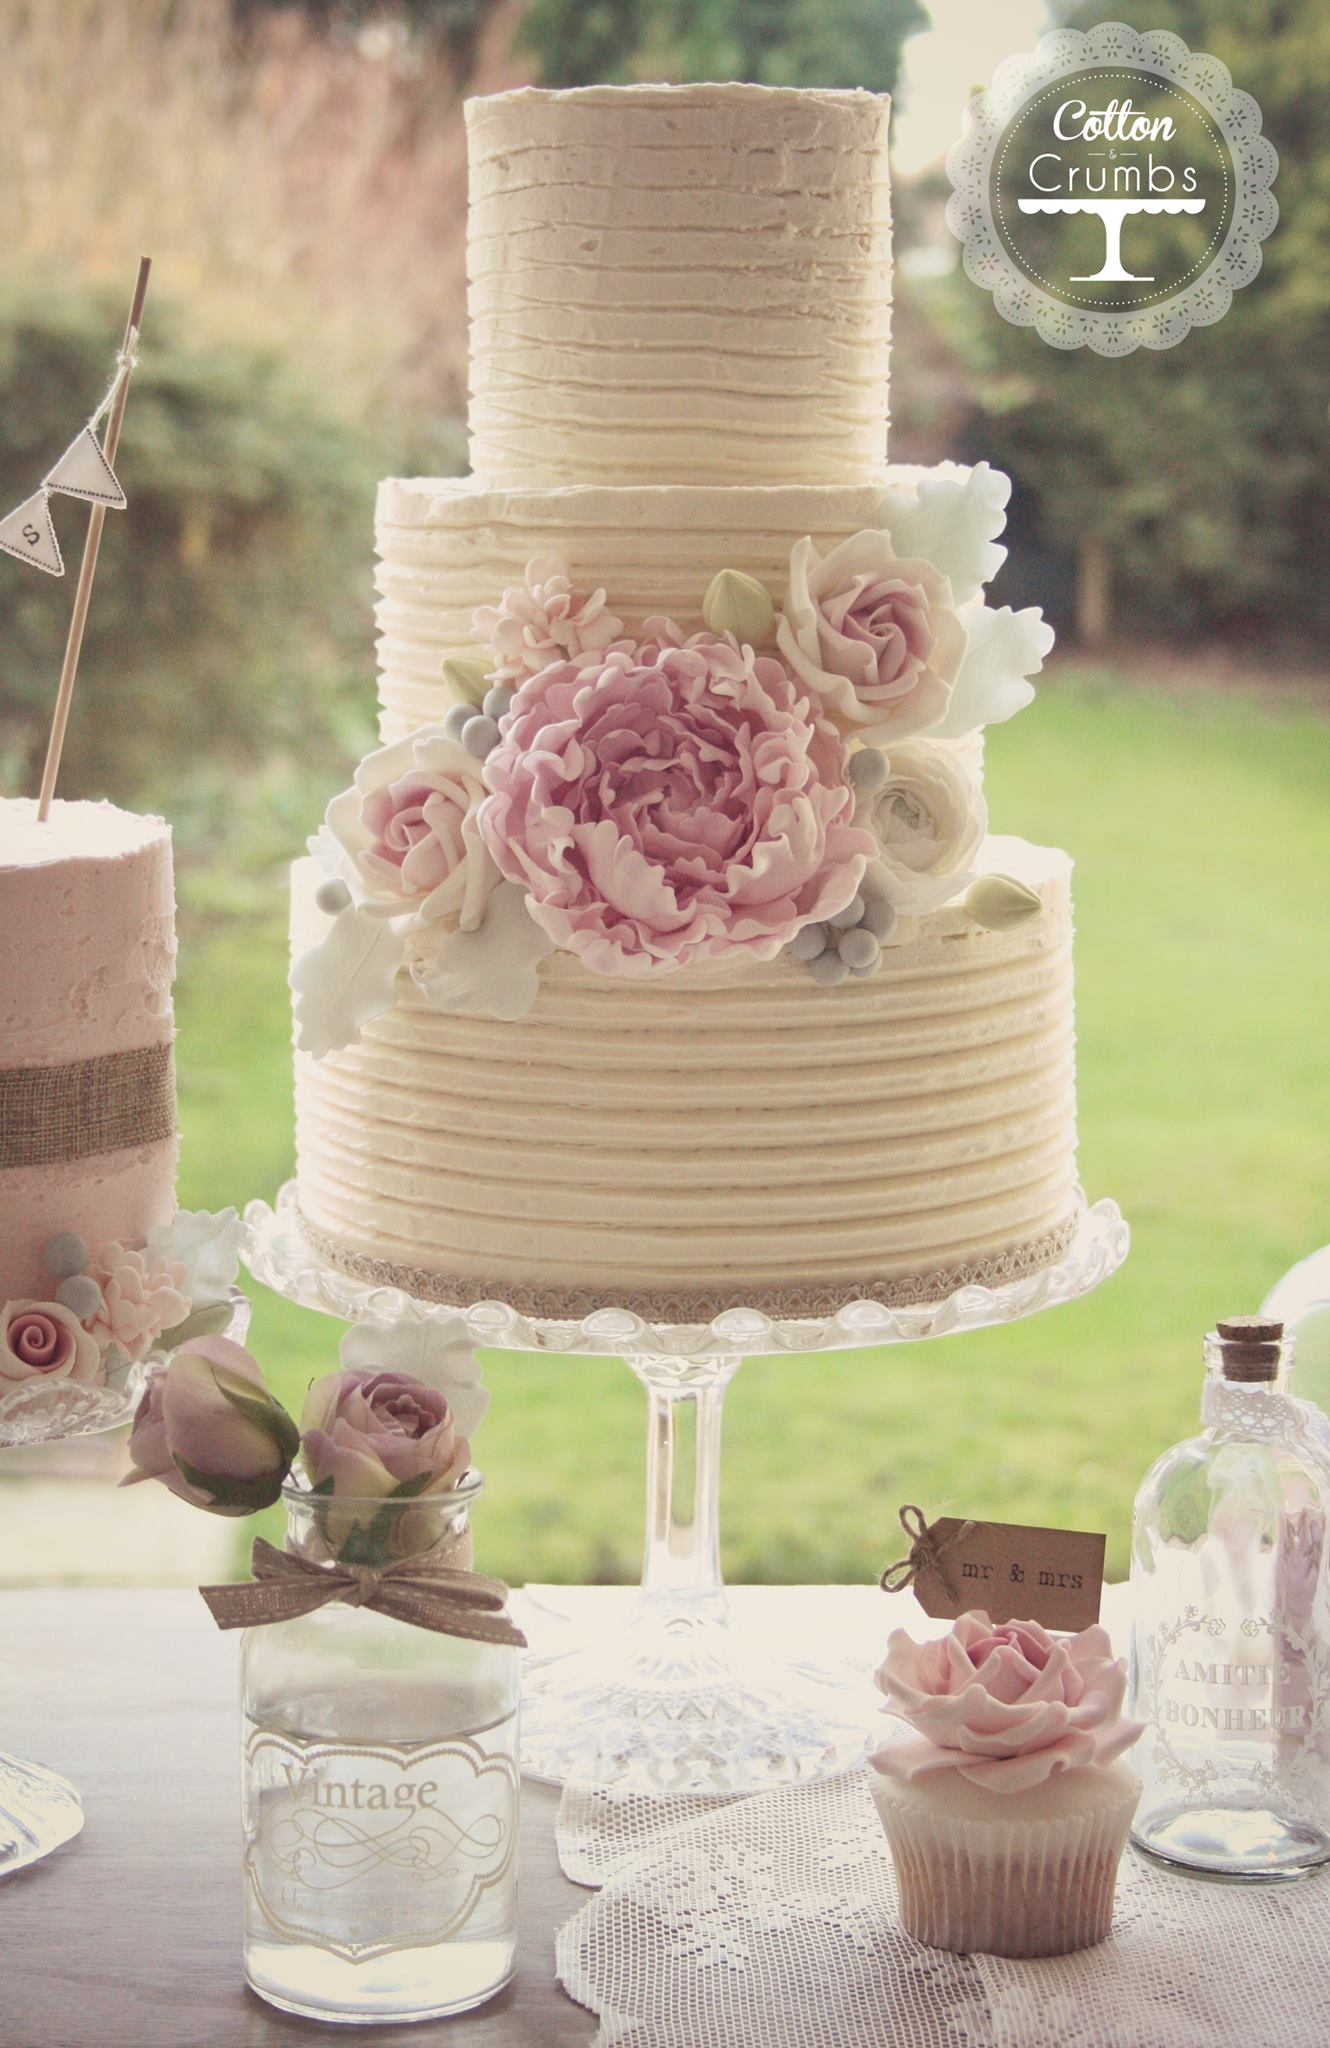 wedding-cake-ideas-21-06202014nz